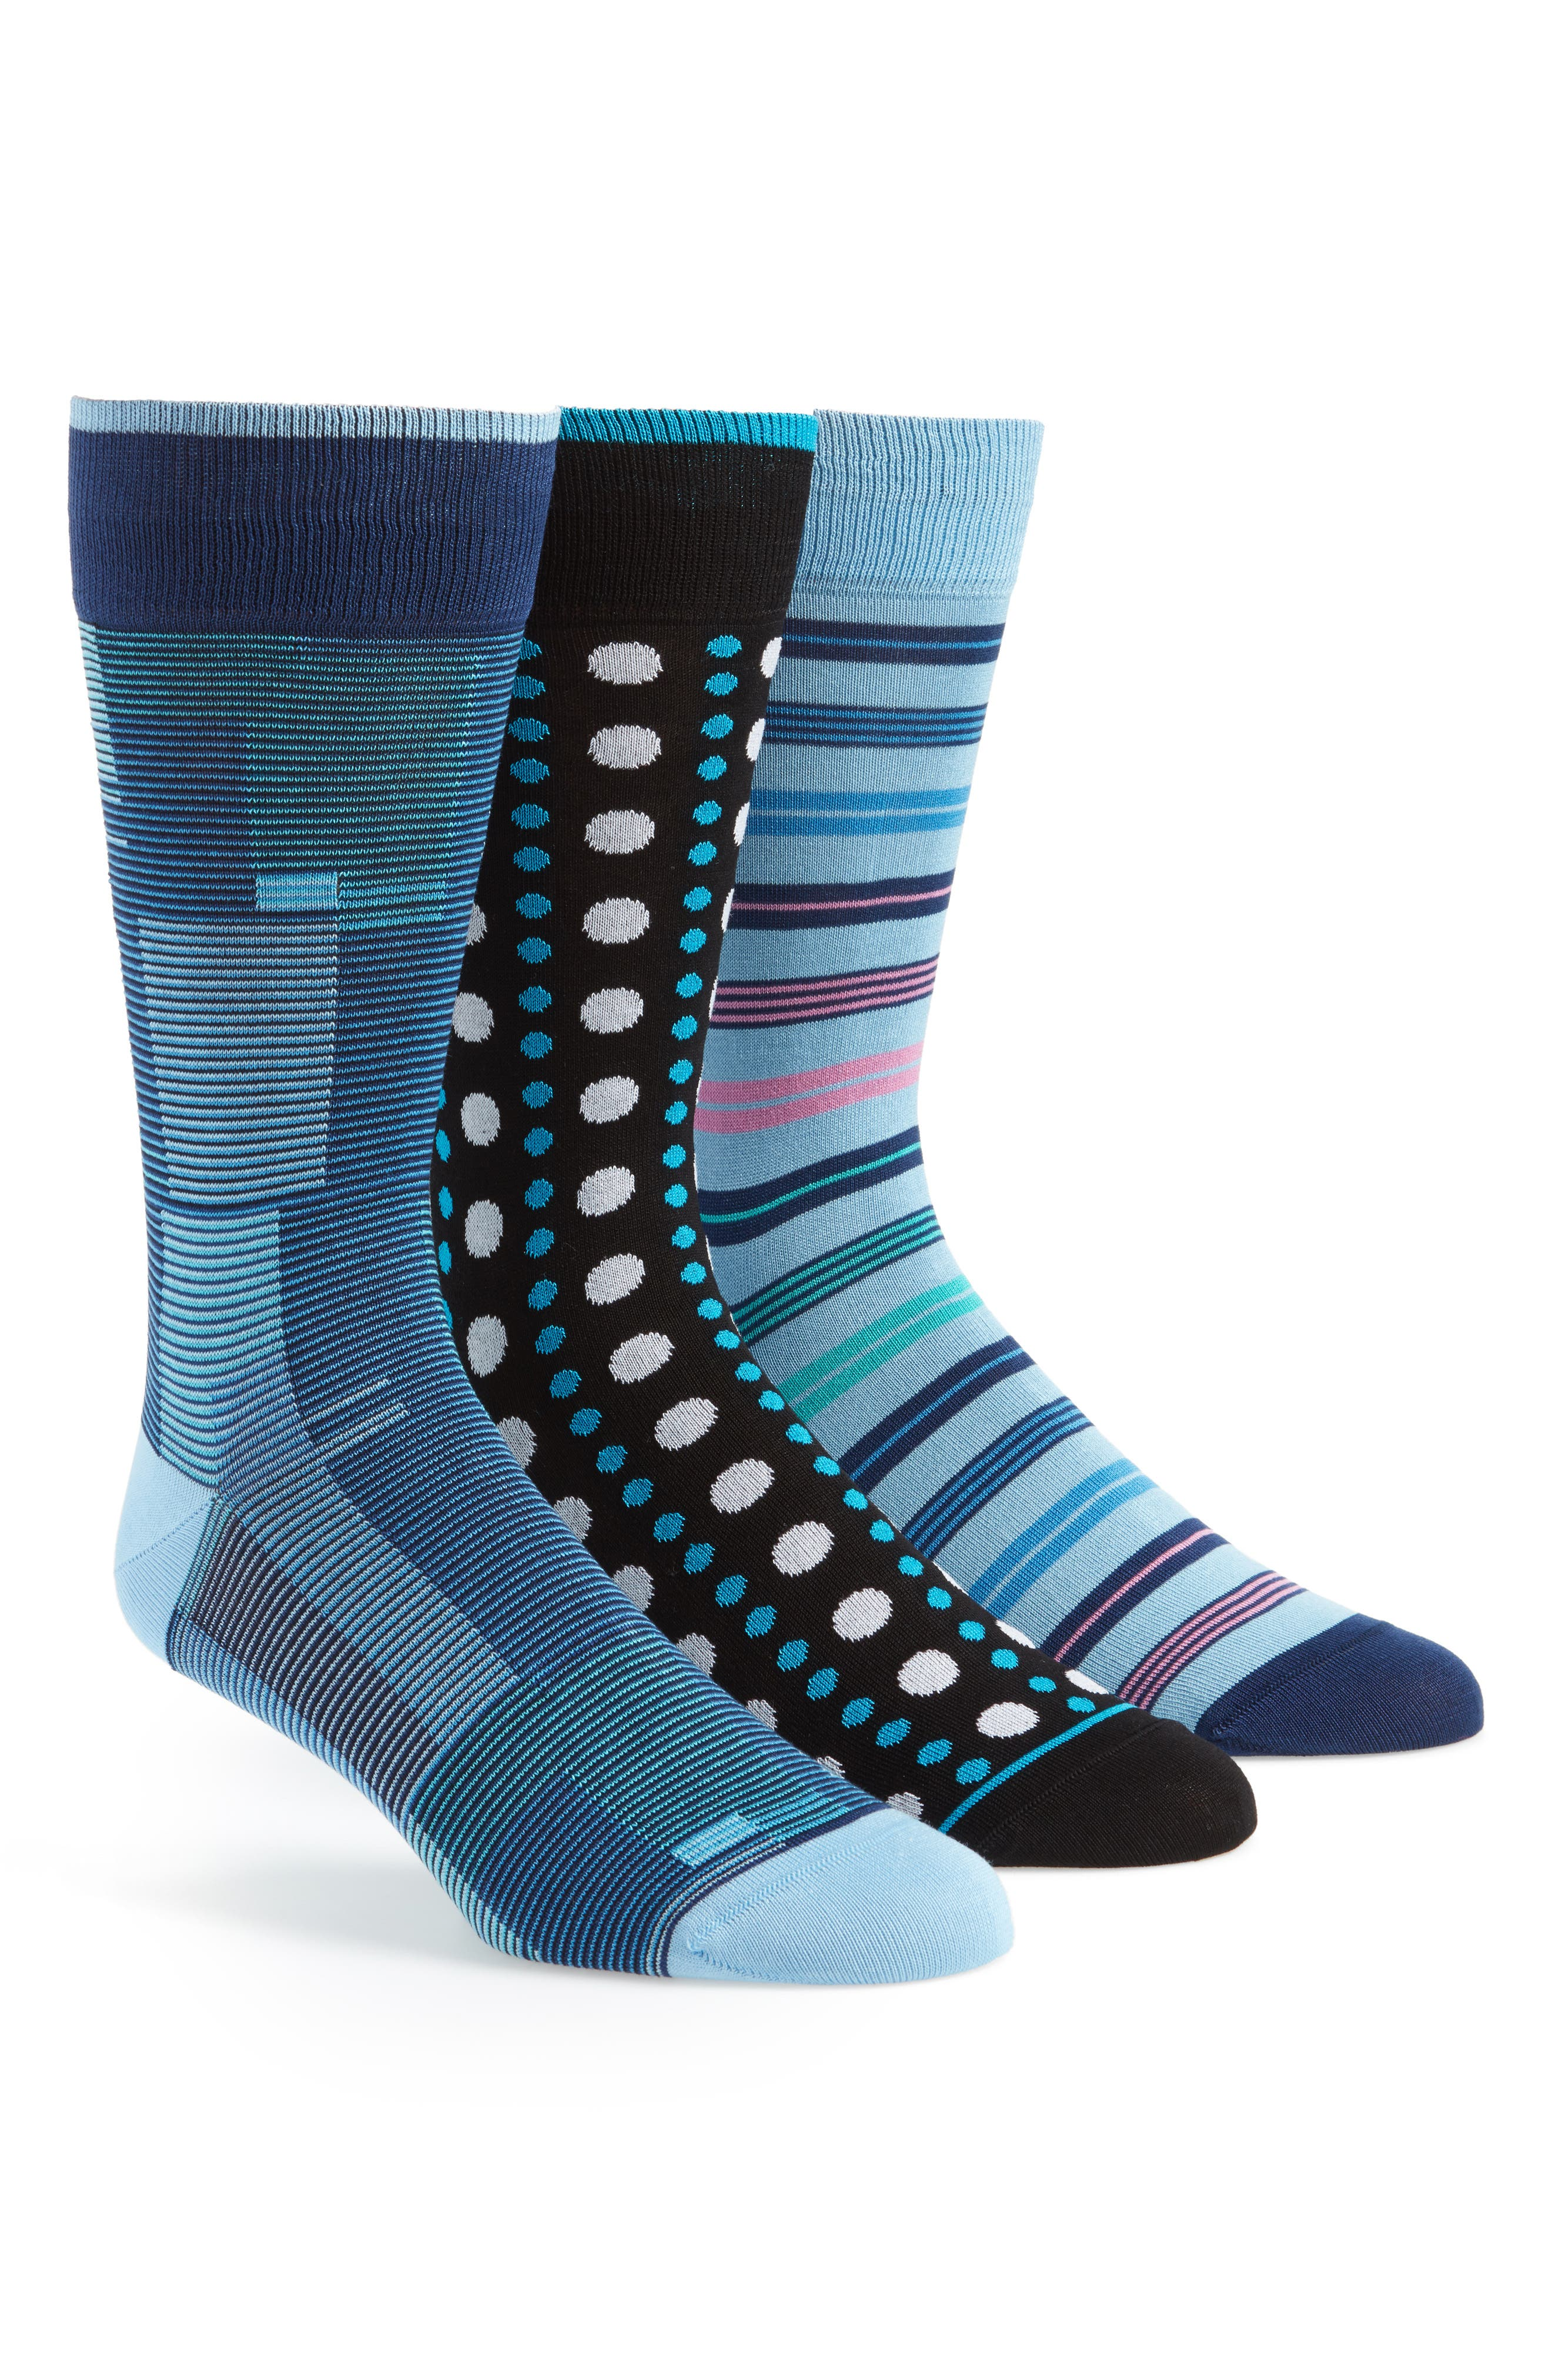 3-Pack Assorted Mercerized Cotton Blend Sock Gift Set,                         Main,                         color, Turquoise